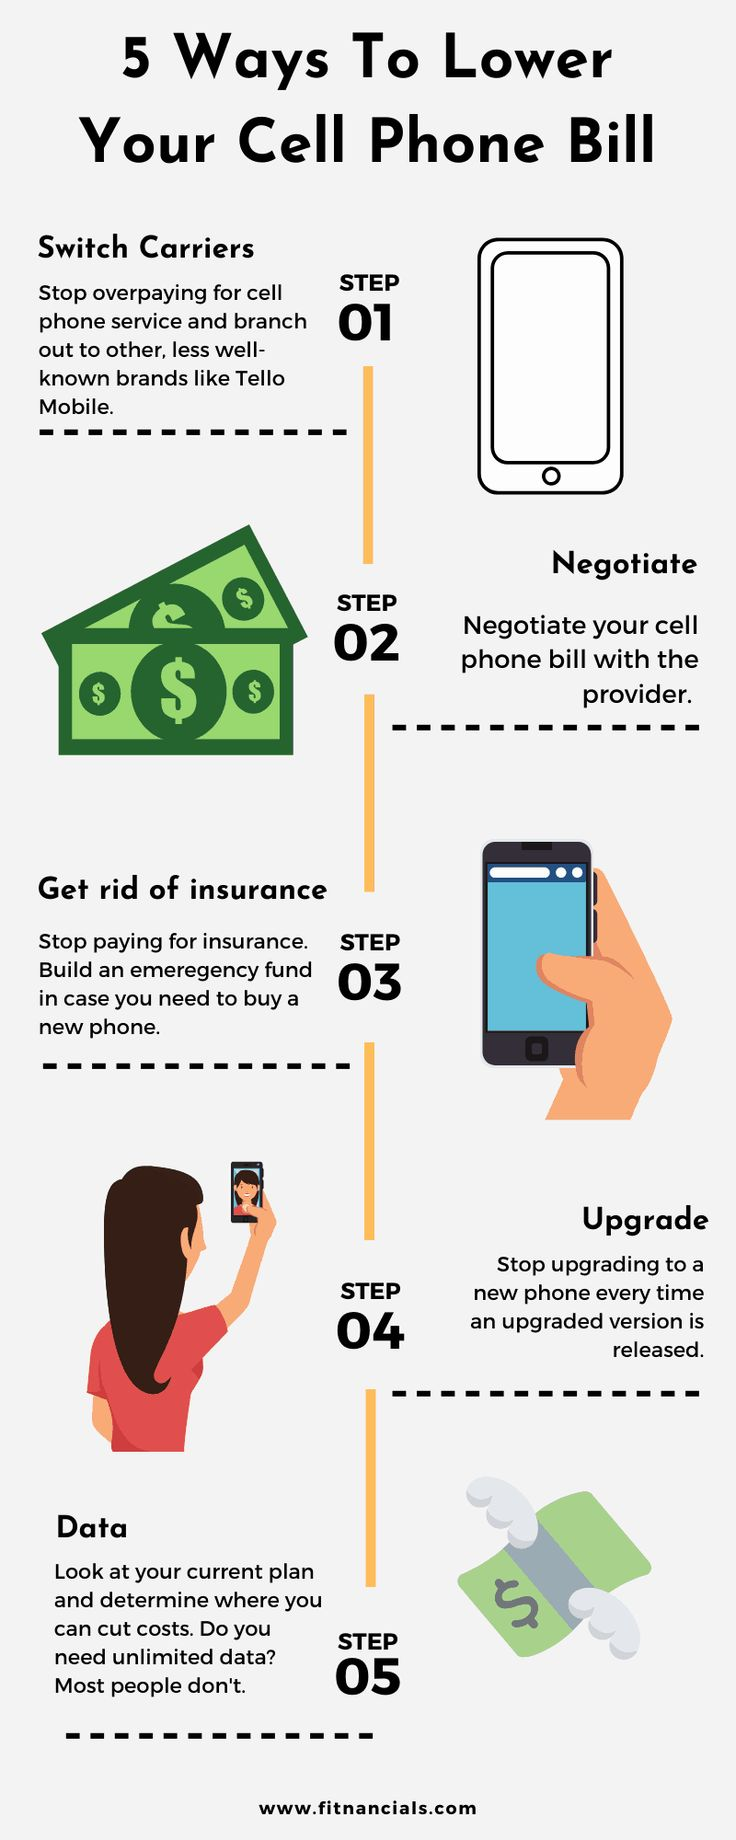 Here's How To Save $1,000 Per Year On Your Cell Phone Plan